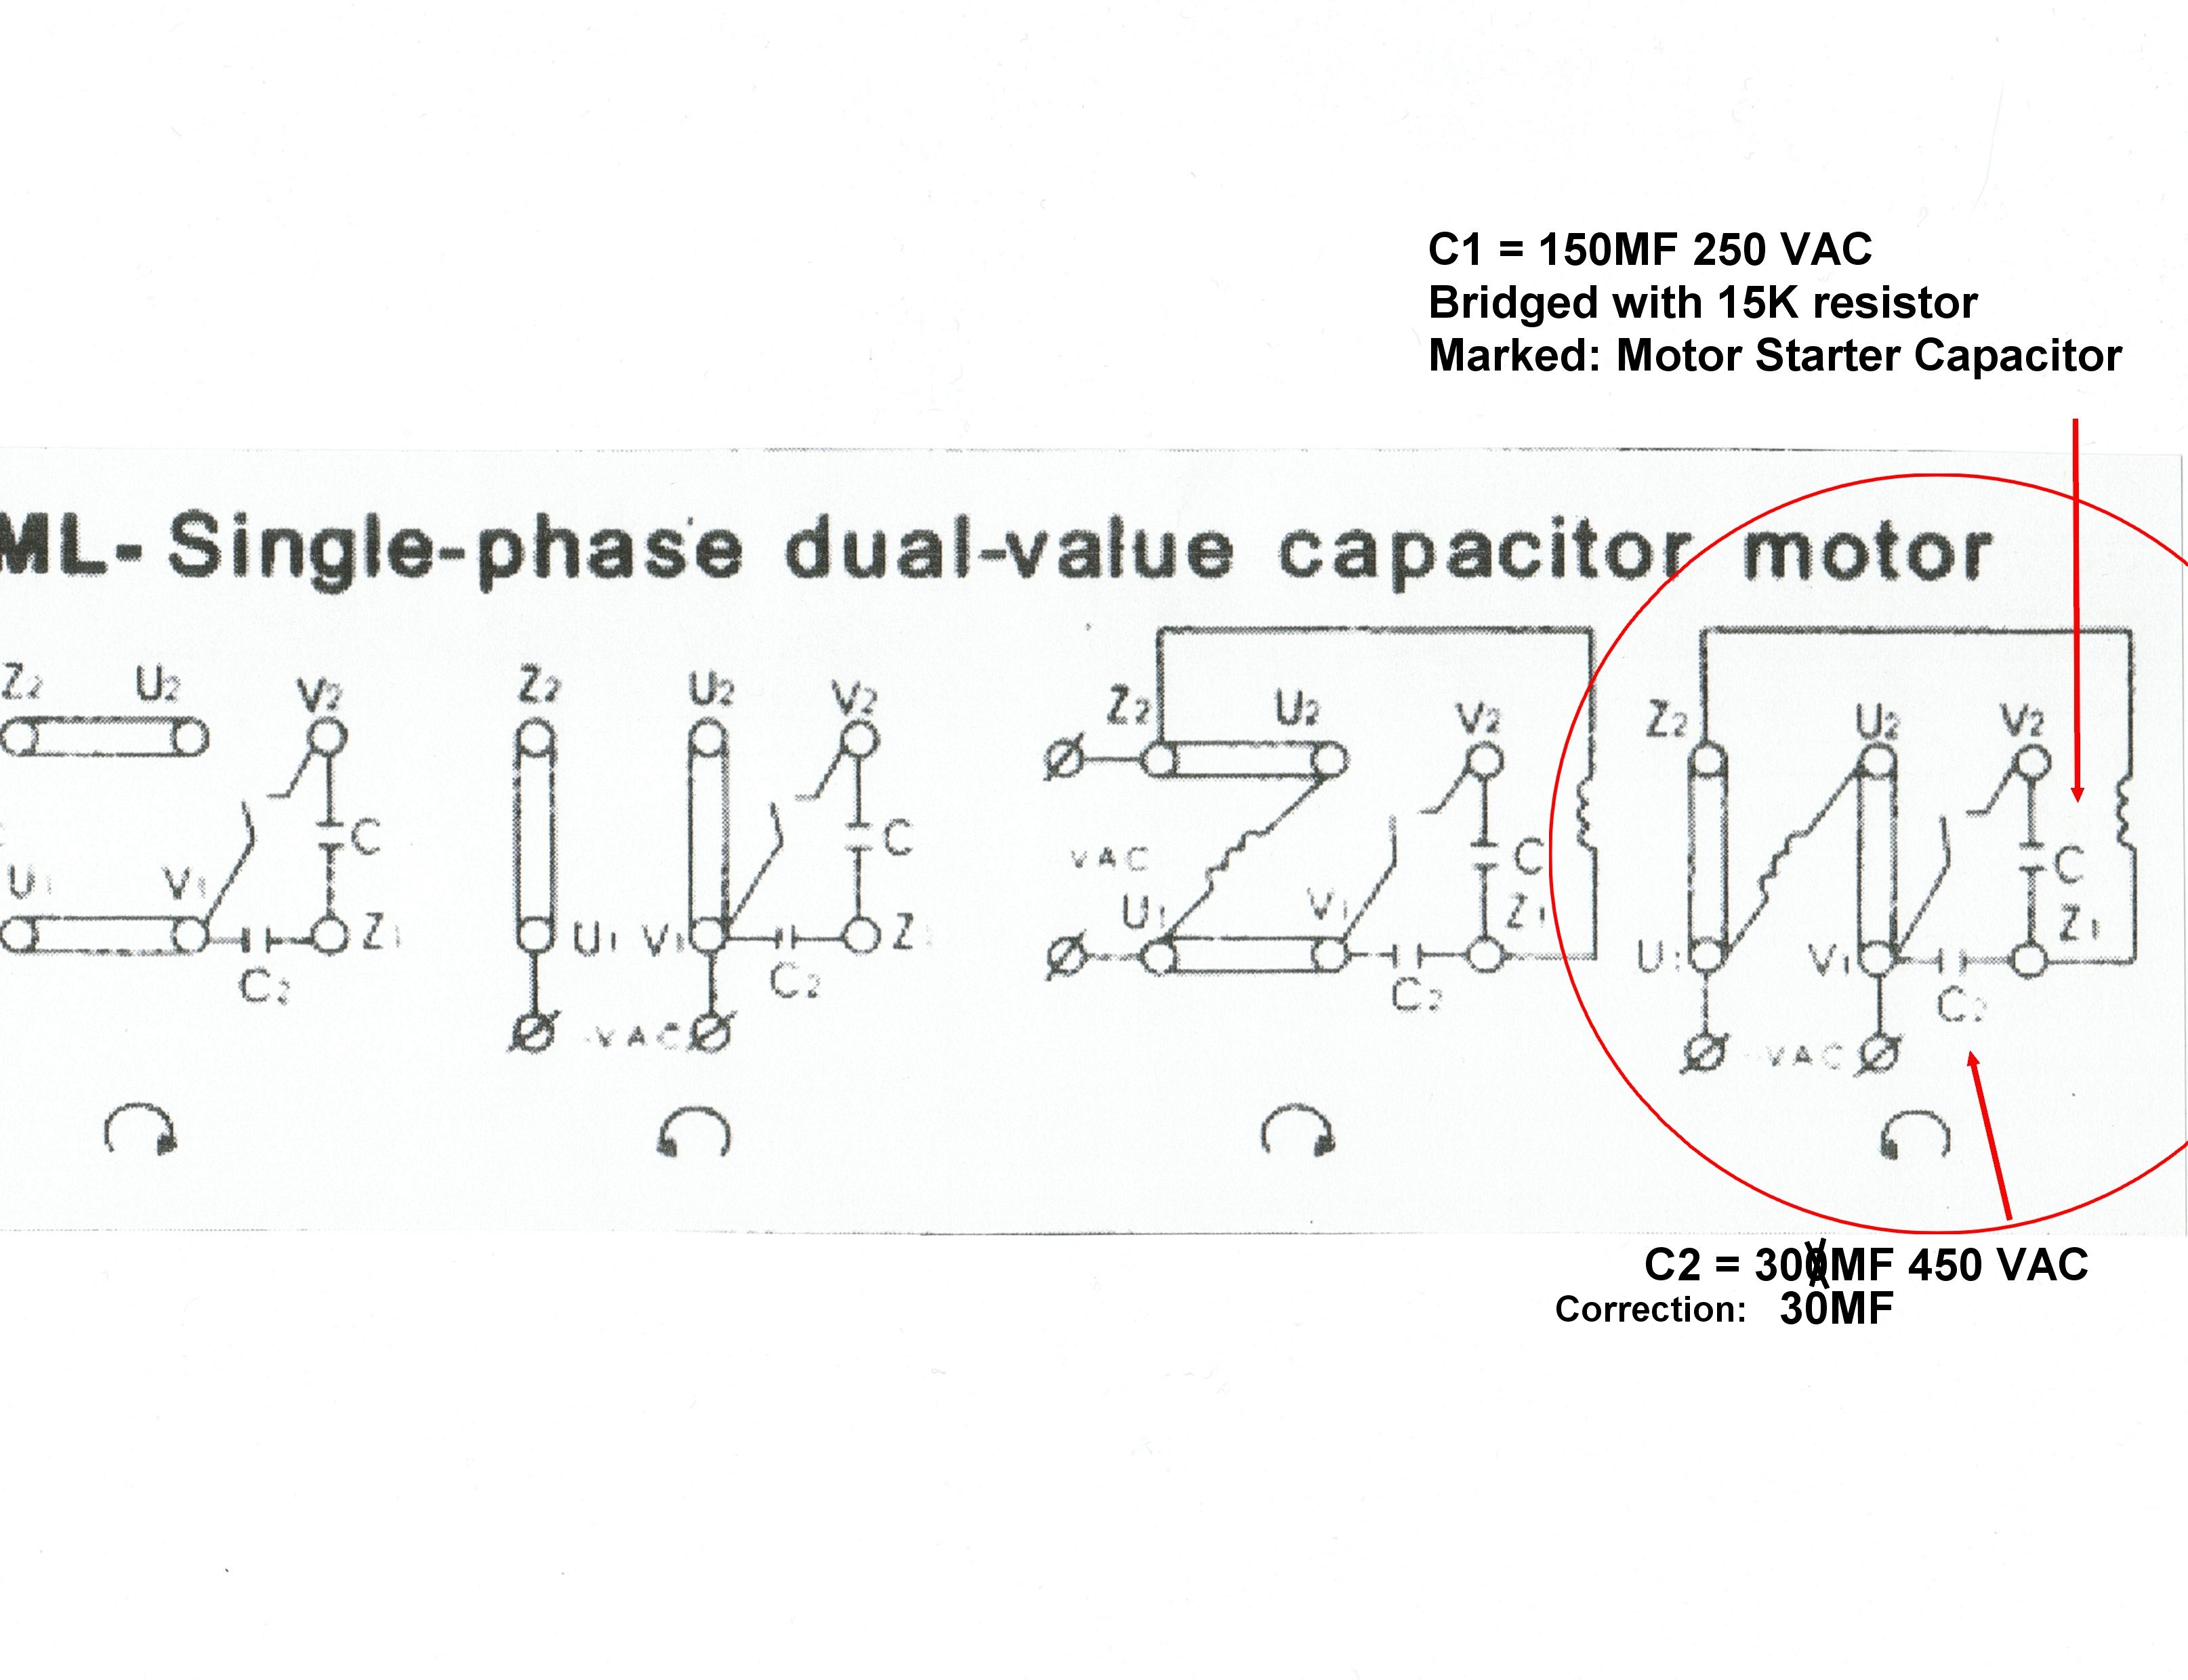 Wiring Diagram Single Phase Induction Motor : Single phase induction motor schematic get free image